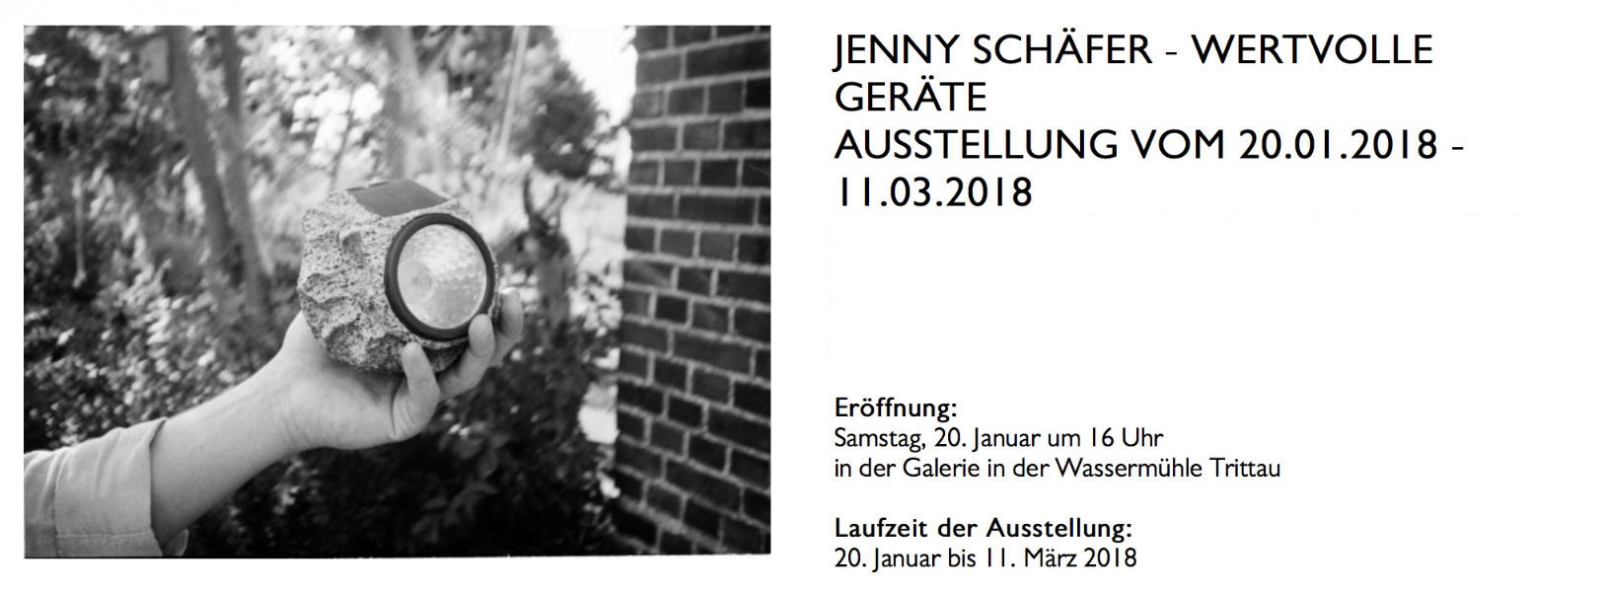 http://www.jennyschaefer.de/files/gimgs/th-1_a_v2.jpg